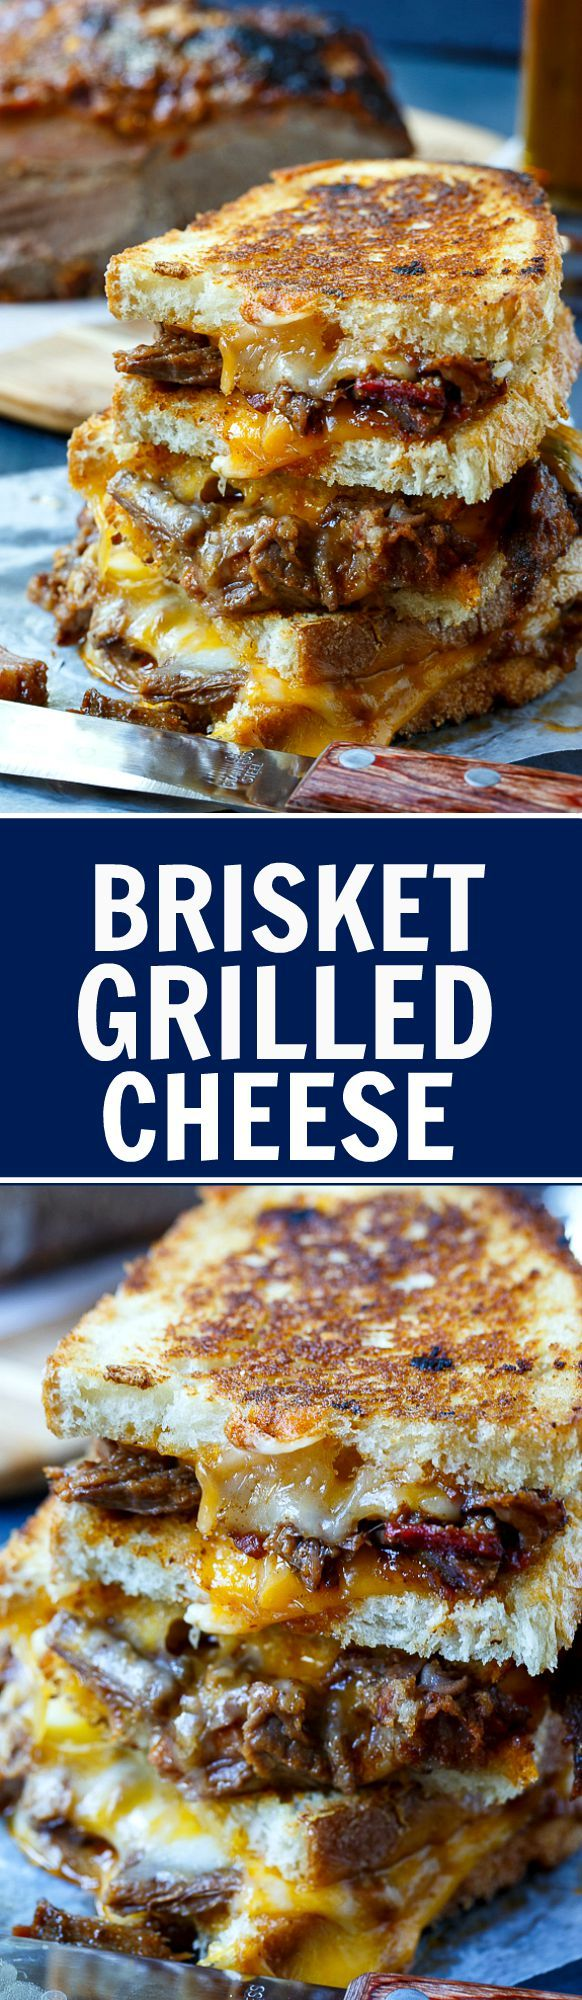 Brisket Grilled Cheese via @FMSCLiving